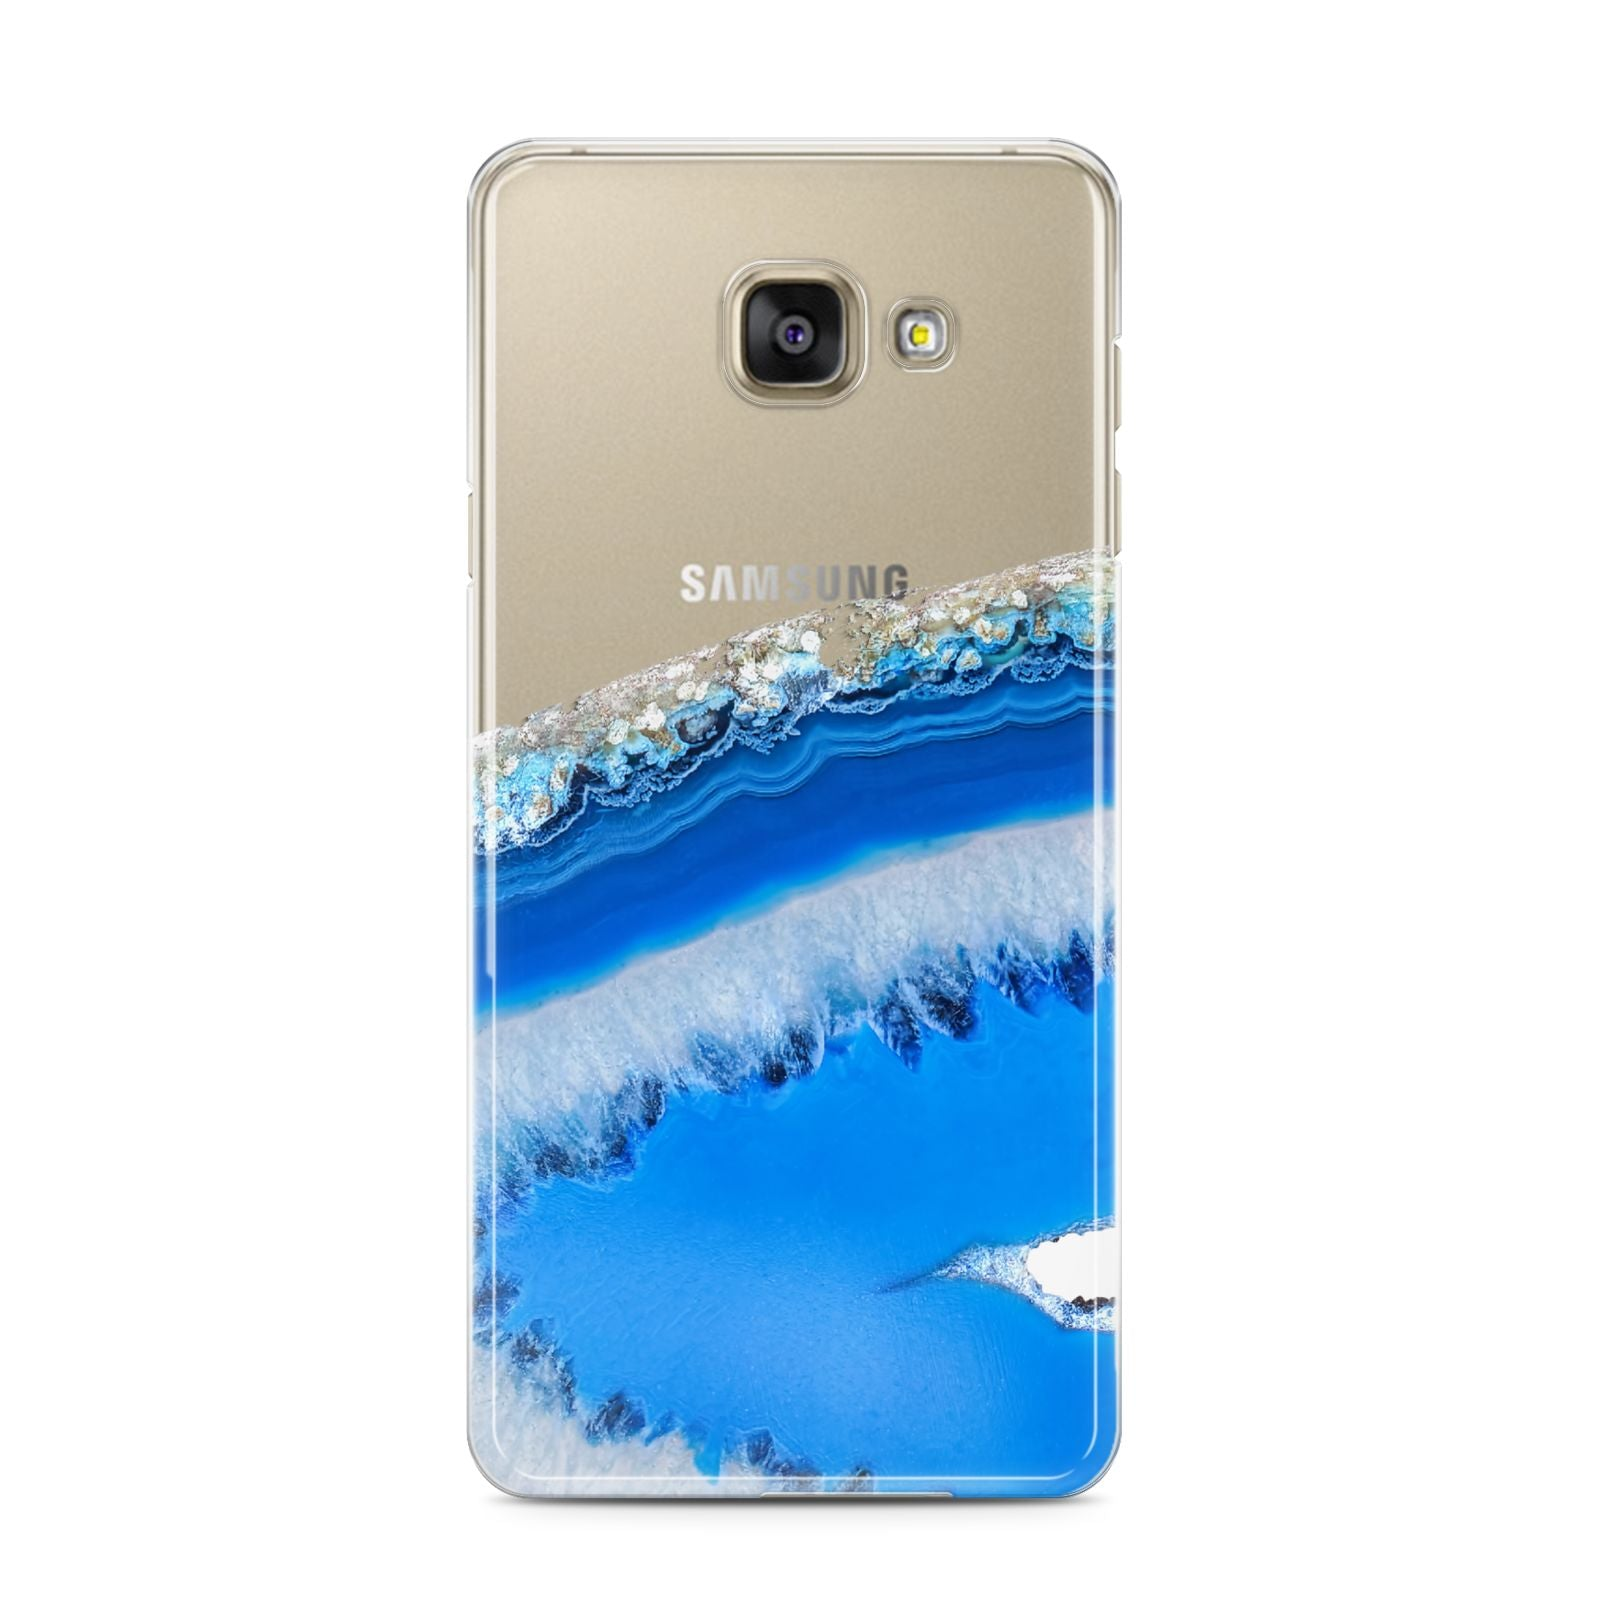 Agate Blue Samsung Galaxy A3 2016 Case on gold phone